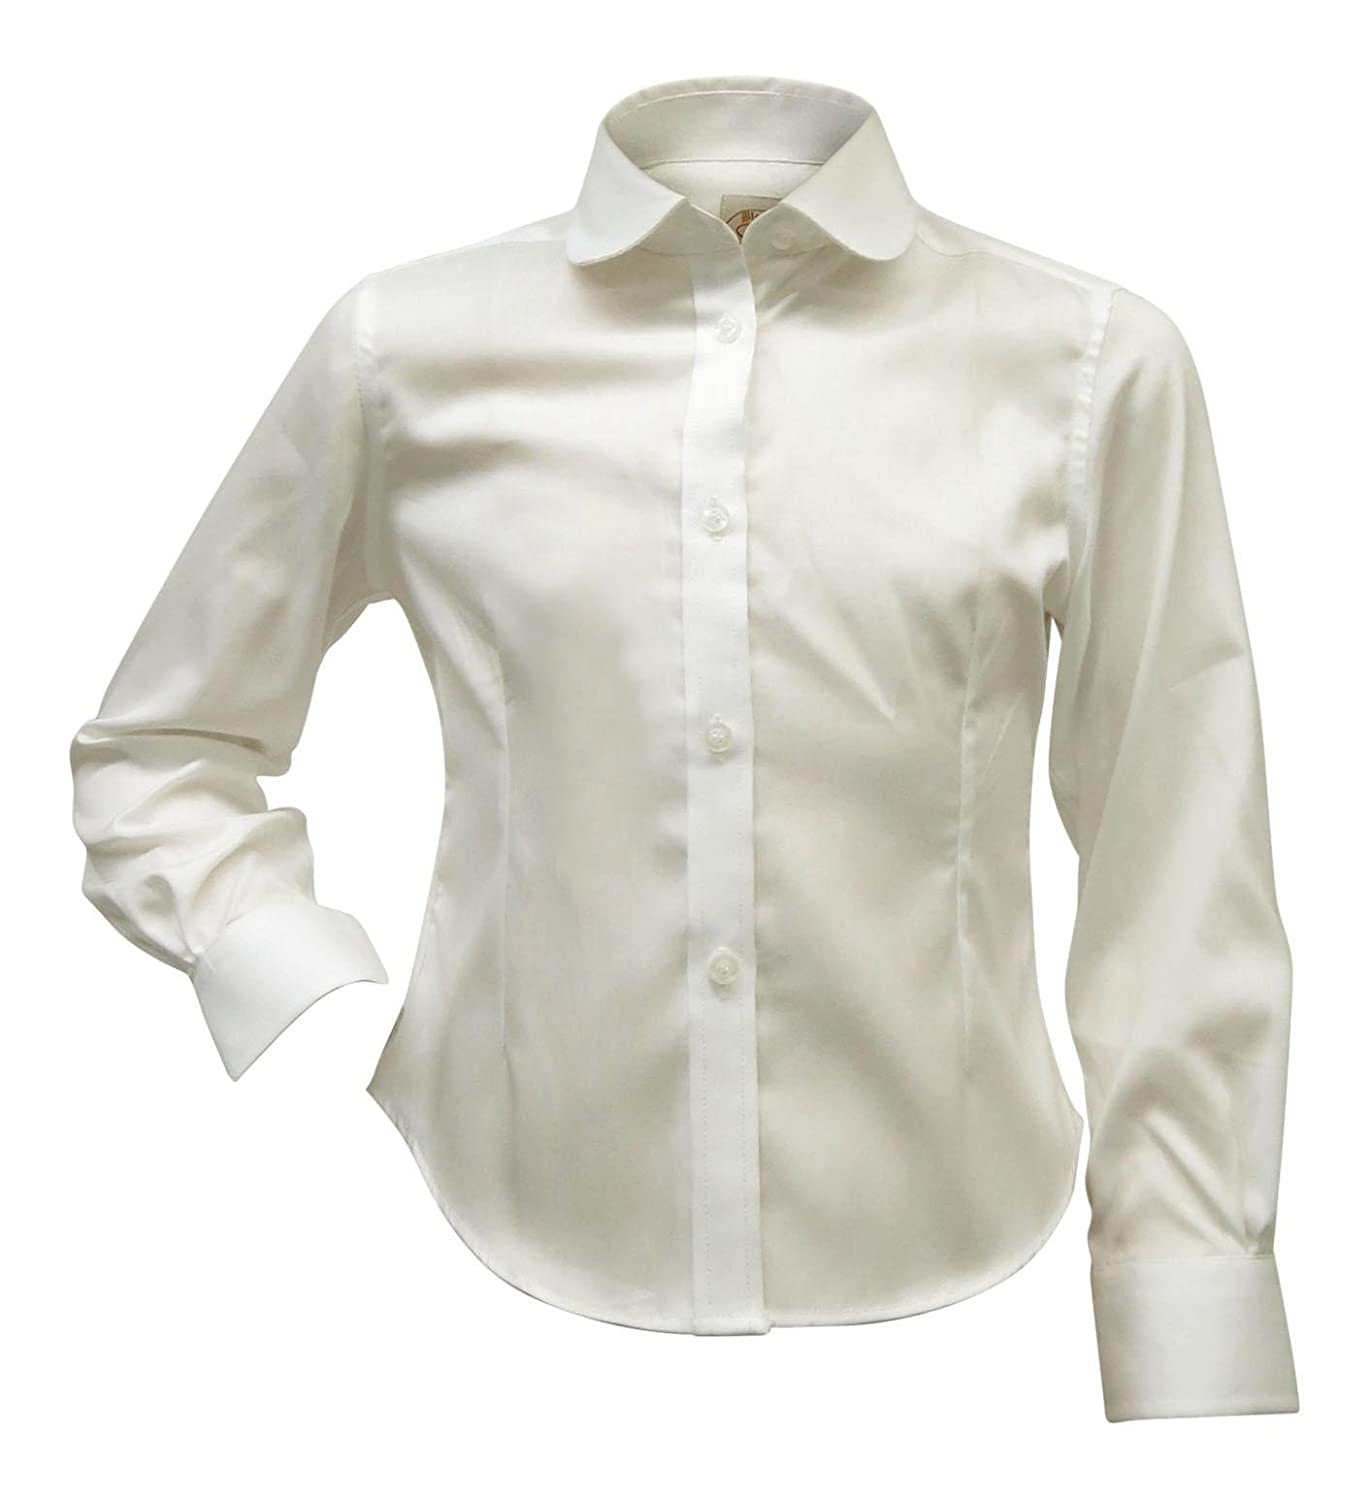 Blooks Girls Long Sleeve Button Down Shirt Blouse Pointy Round Scalloped Collar 9340-41